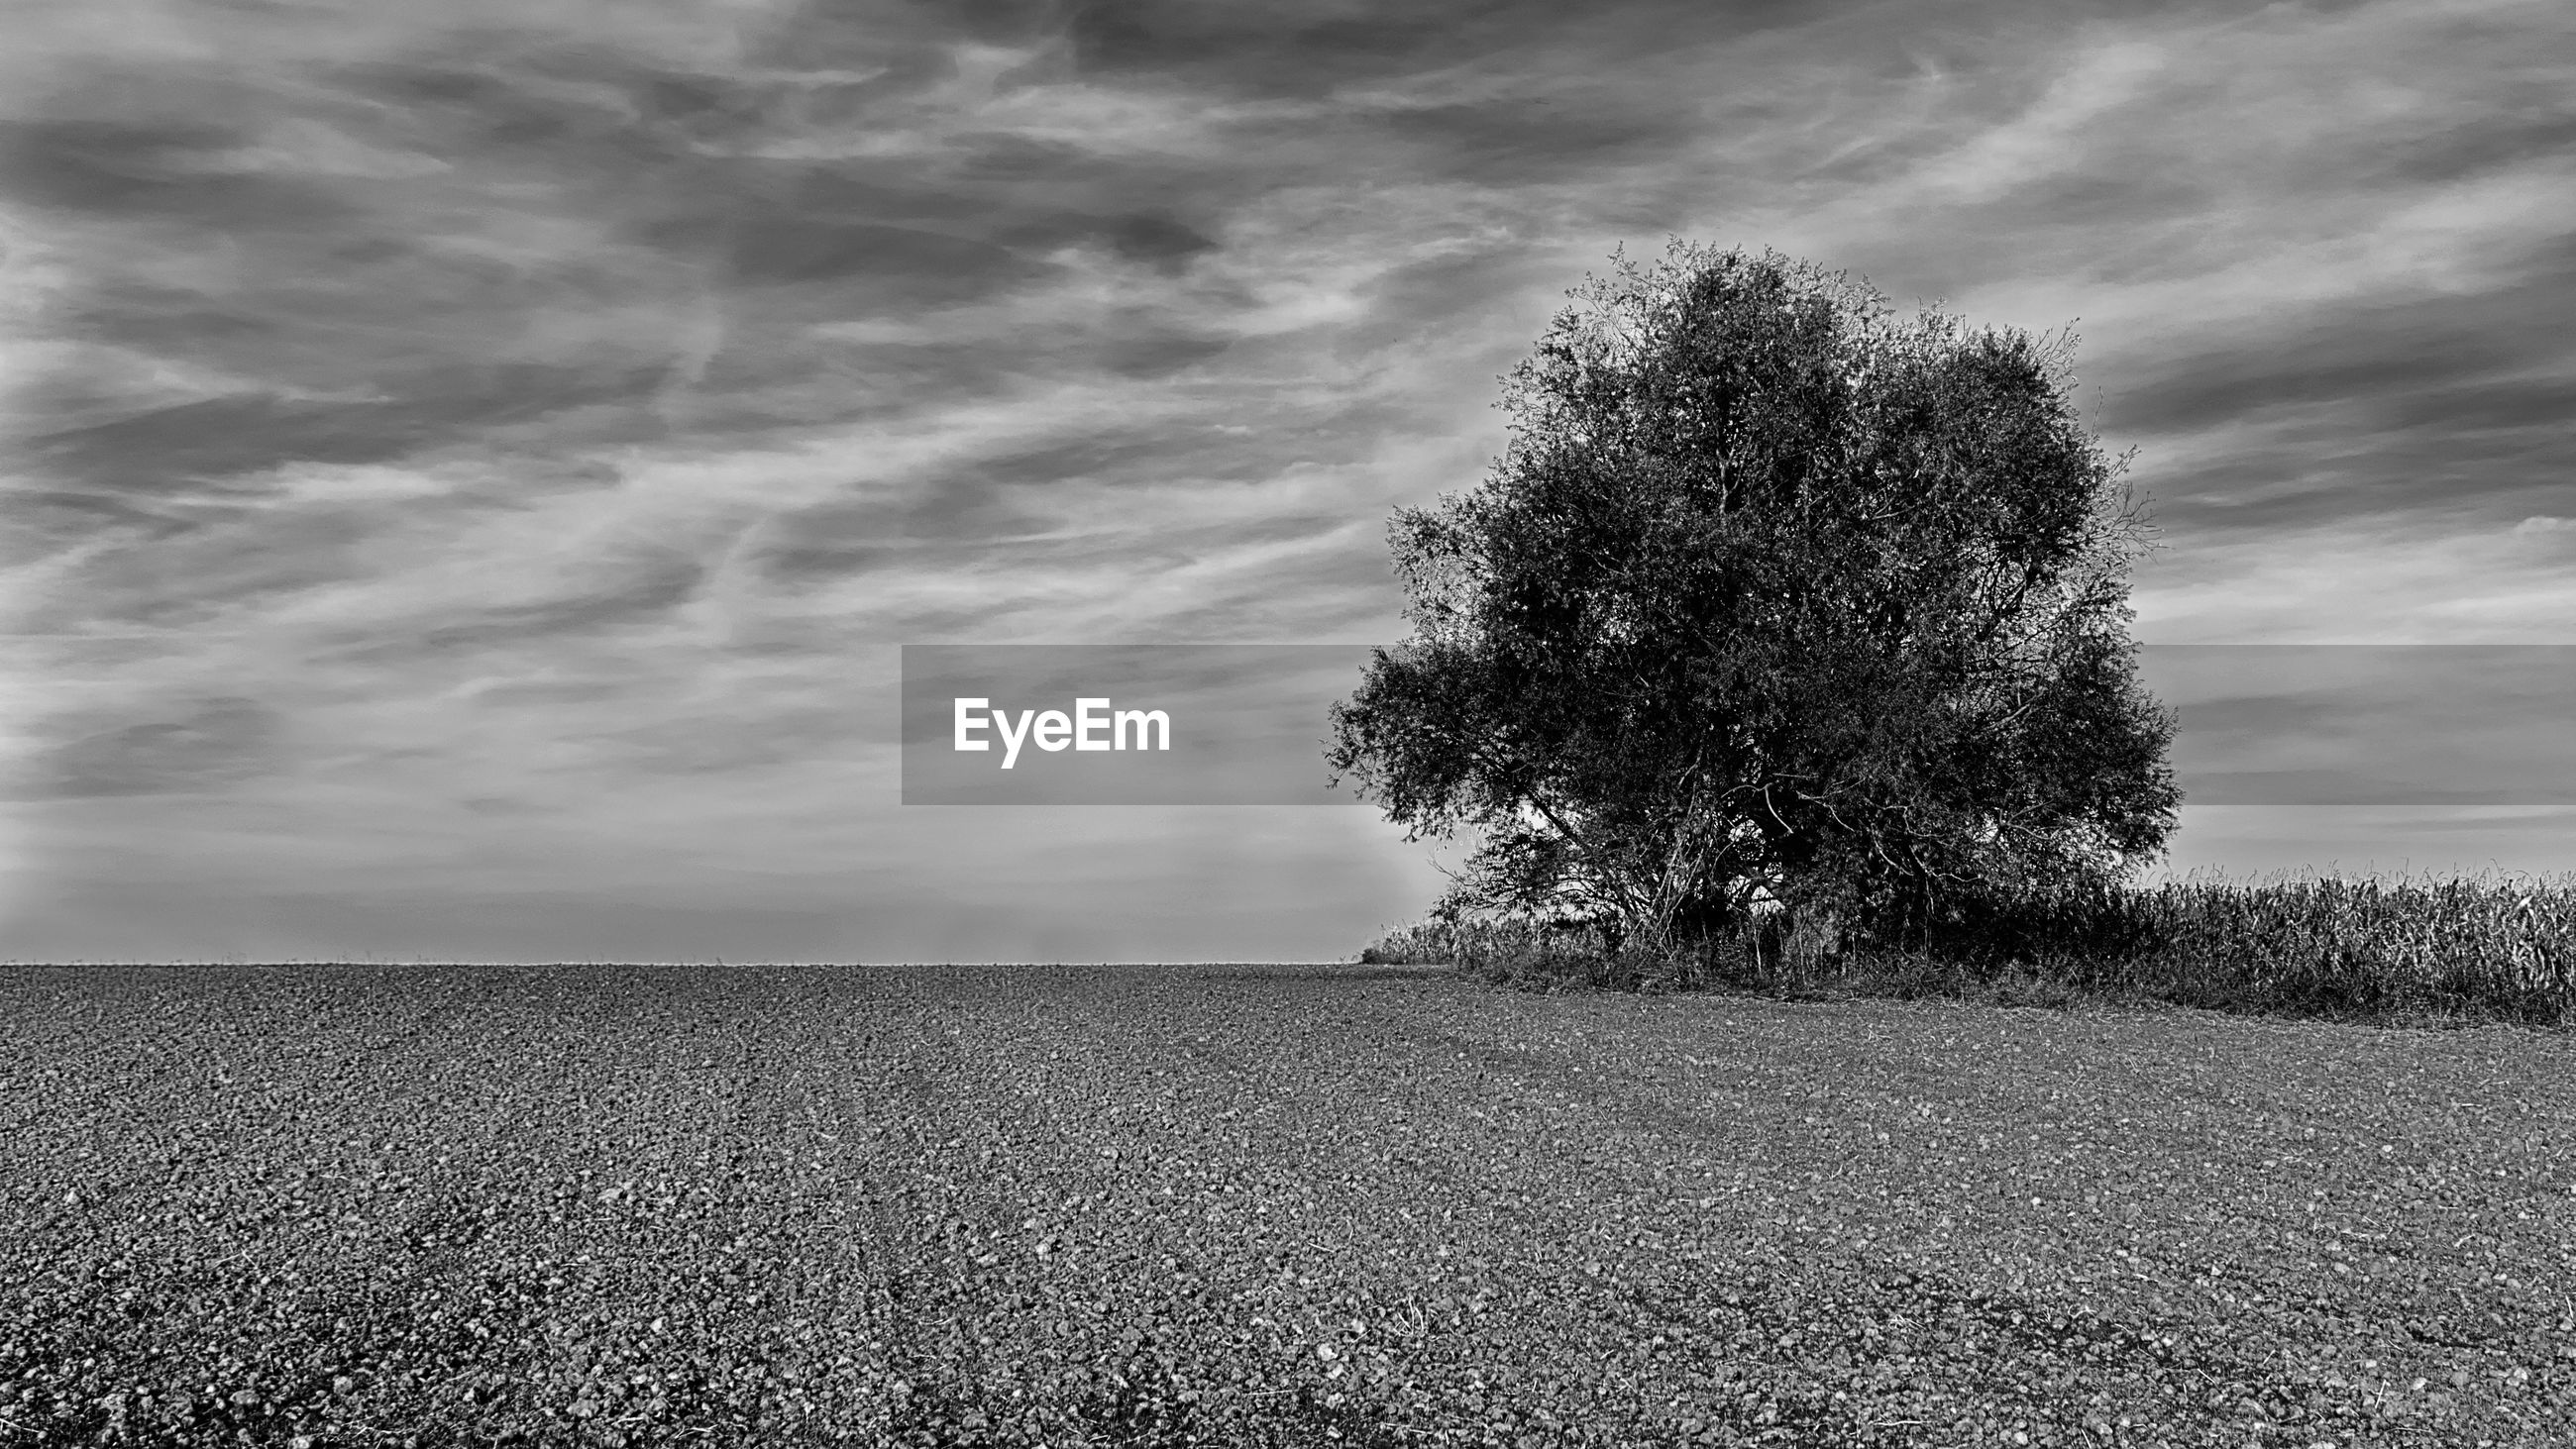 field, landscape, agriculture, nature, tranquility, tranquil scene, beauty in nature, rural scene, sky, growth, scenics, day, outdoors, no people, tree, lone